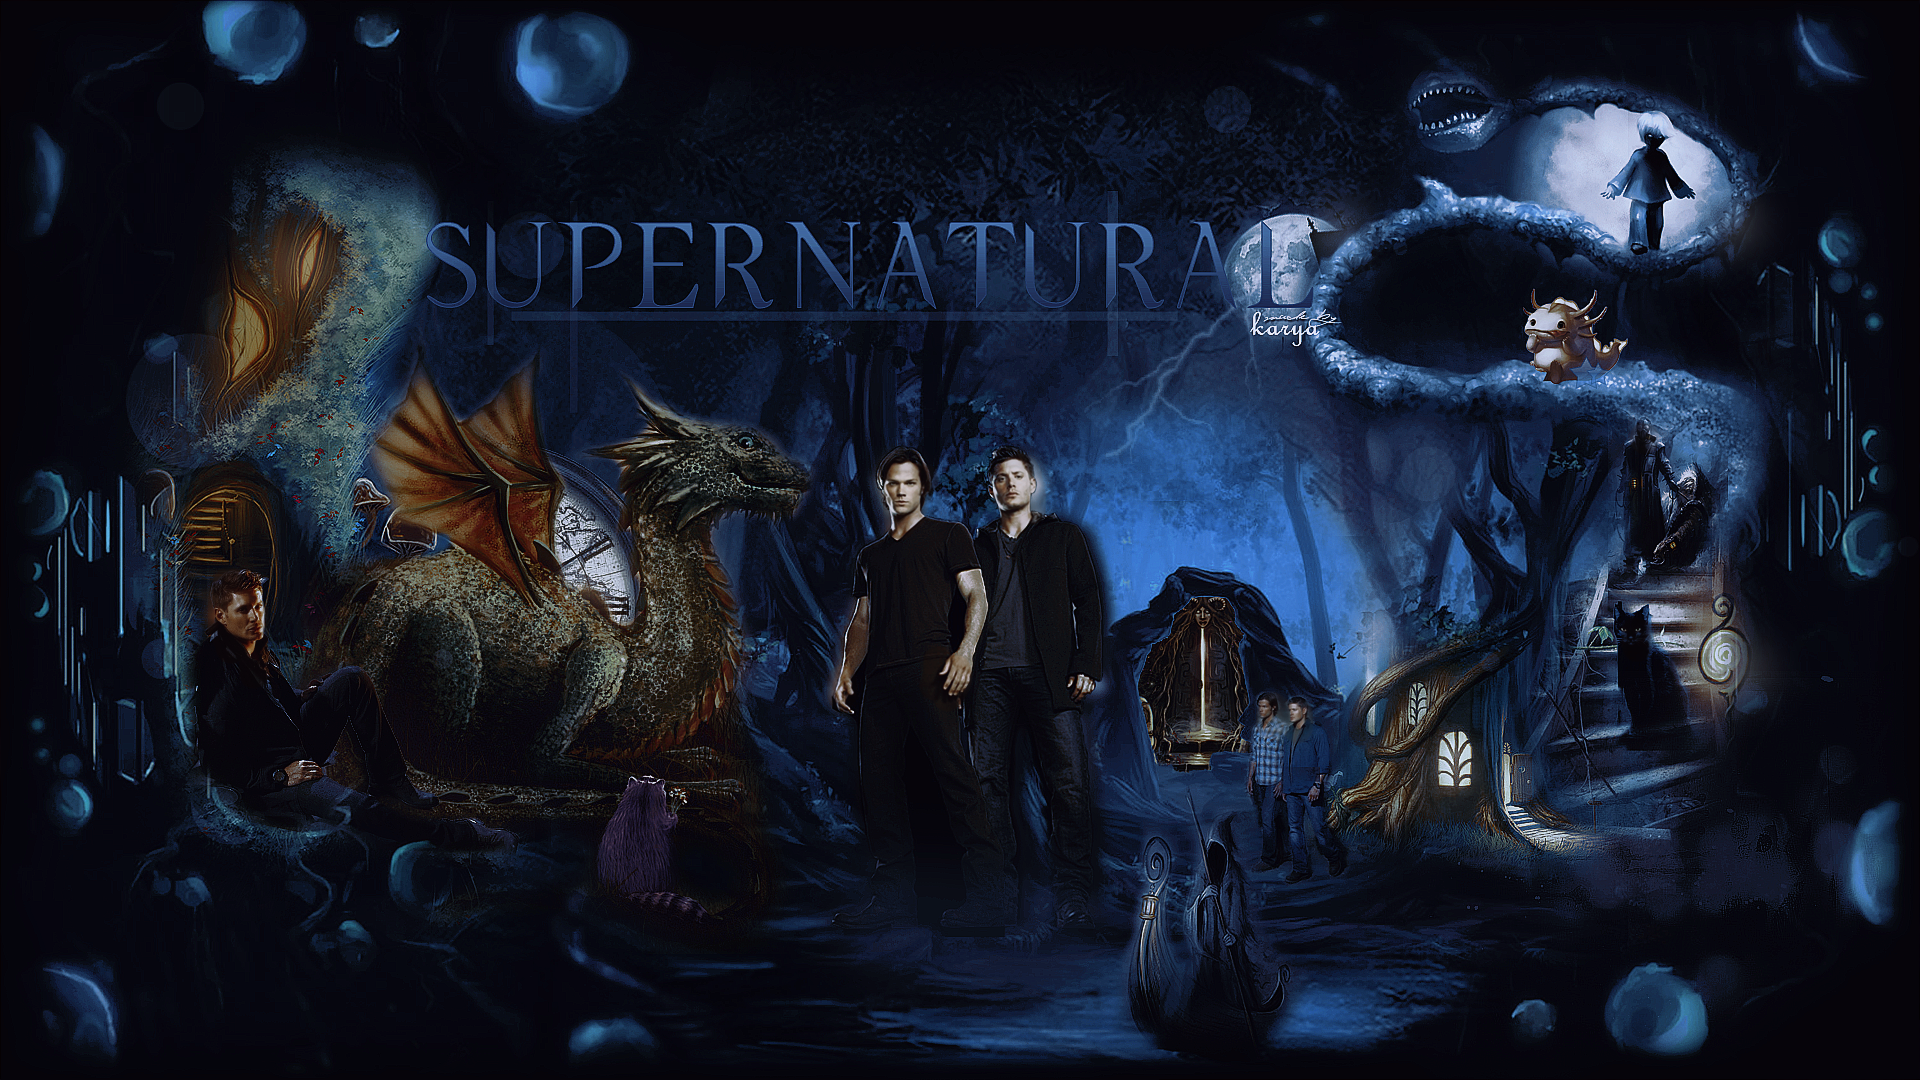 Supernatural HD Backgrounds for PC